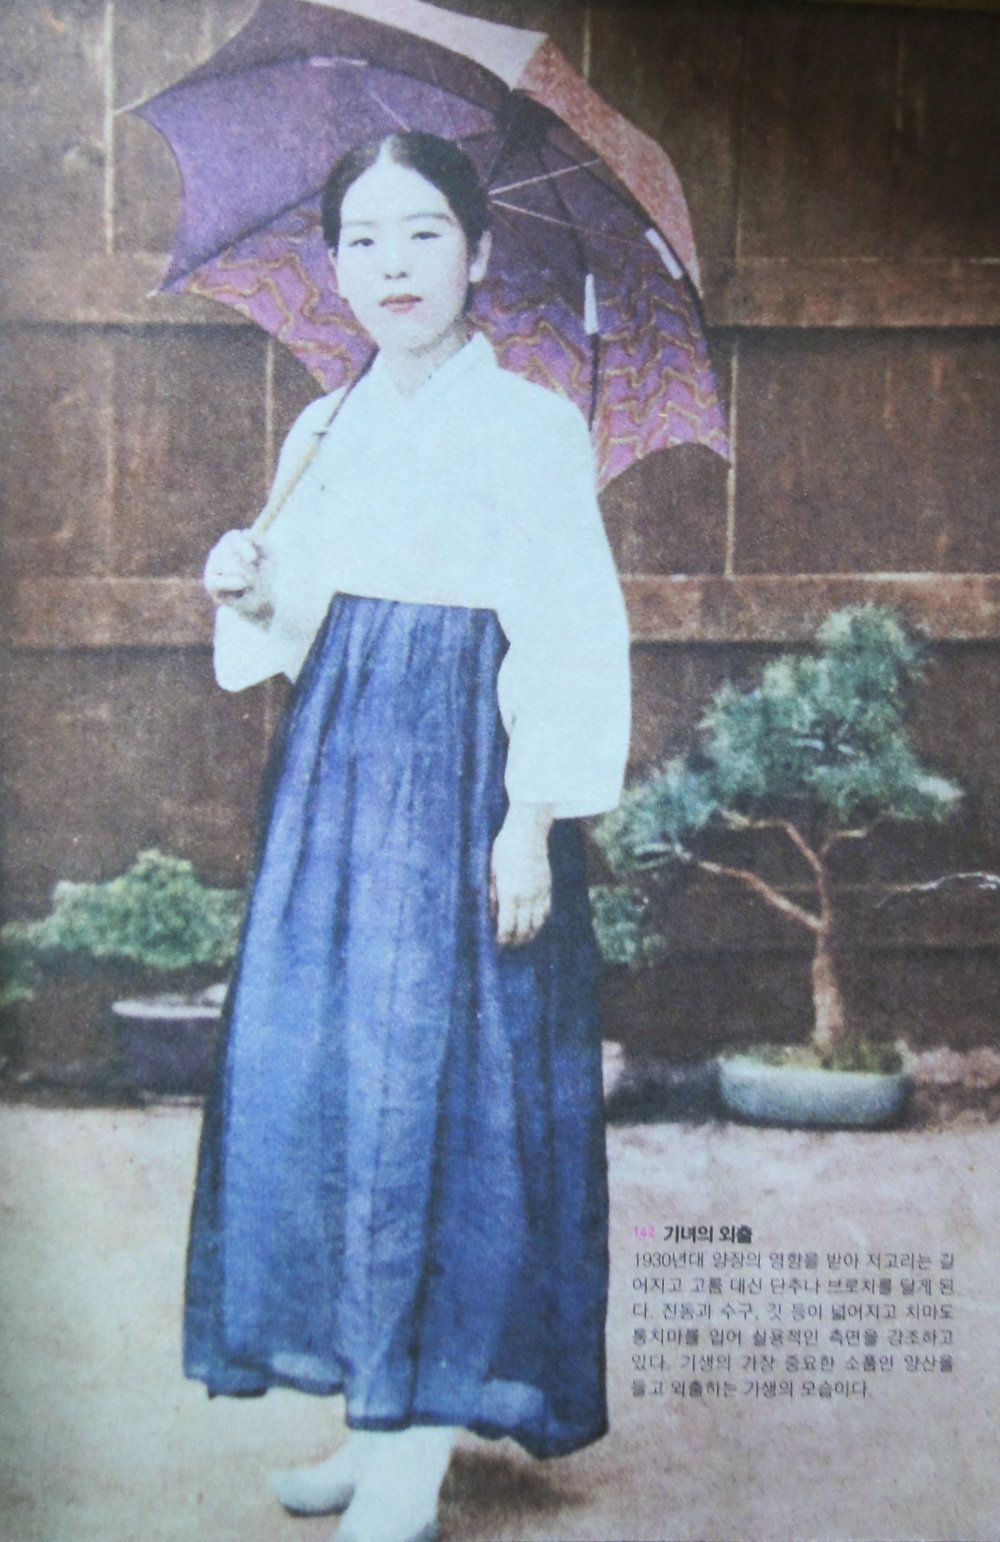 A gisaeng girl ready for going out. The fastening of the top is Westernised - from tying up to buttons. The sun umbrella was a symbol of gisaengs back then.